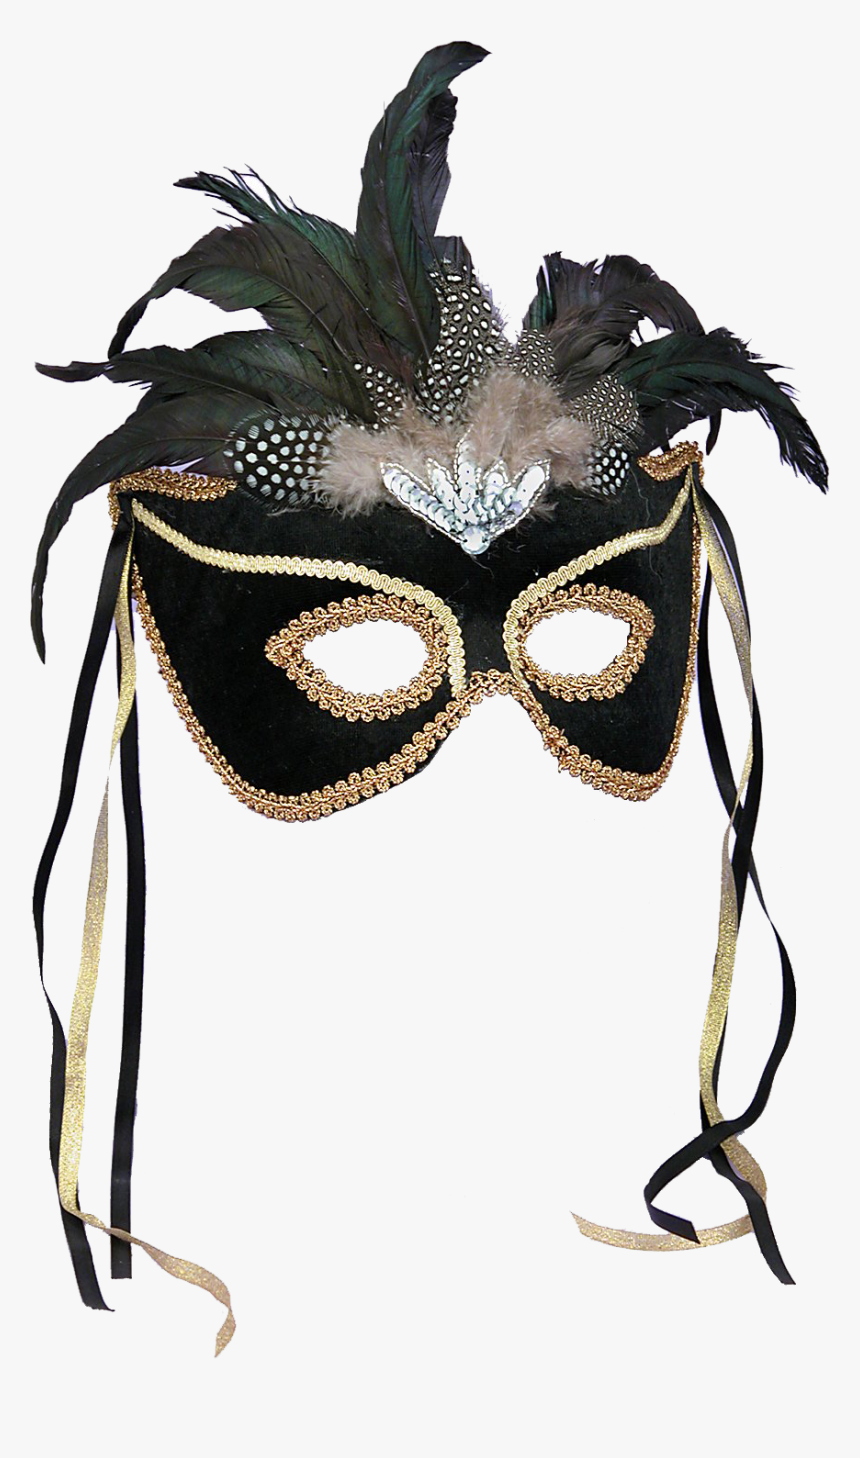 Phantom Ball Masquerade Mask Halloween Costume Feather - Masquerade Ball Gowns With Masks, HD Png Download, Free Download